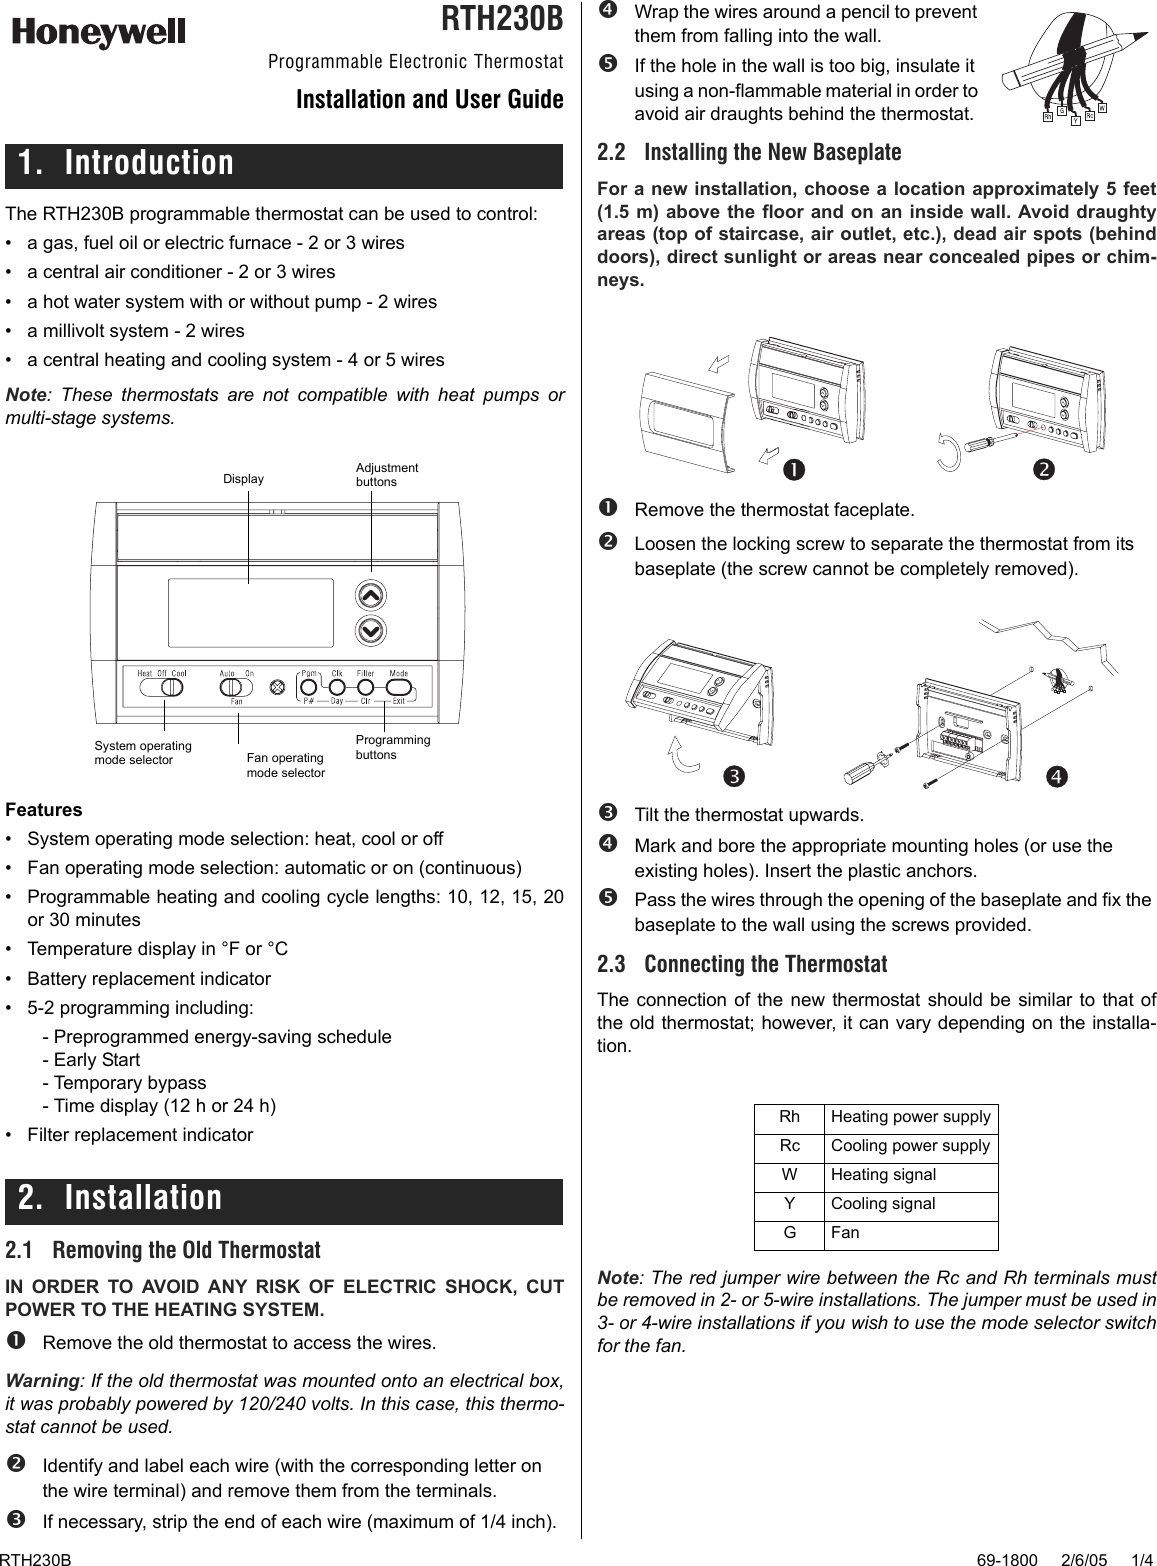 Best Honeywell Rth230b Thermostat Owners Manual Image Collection Wiring Diagram 69 1800 Programmable Electronic Installation And User Guide To The 39359643 Dfda